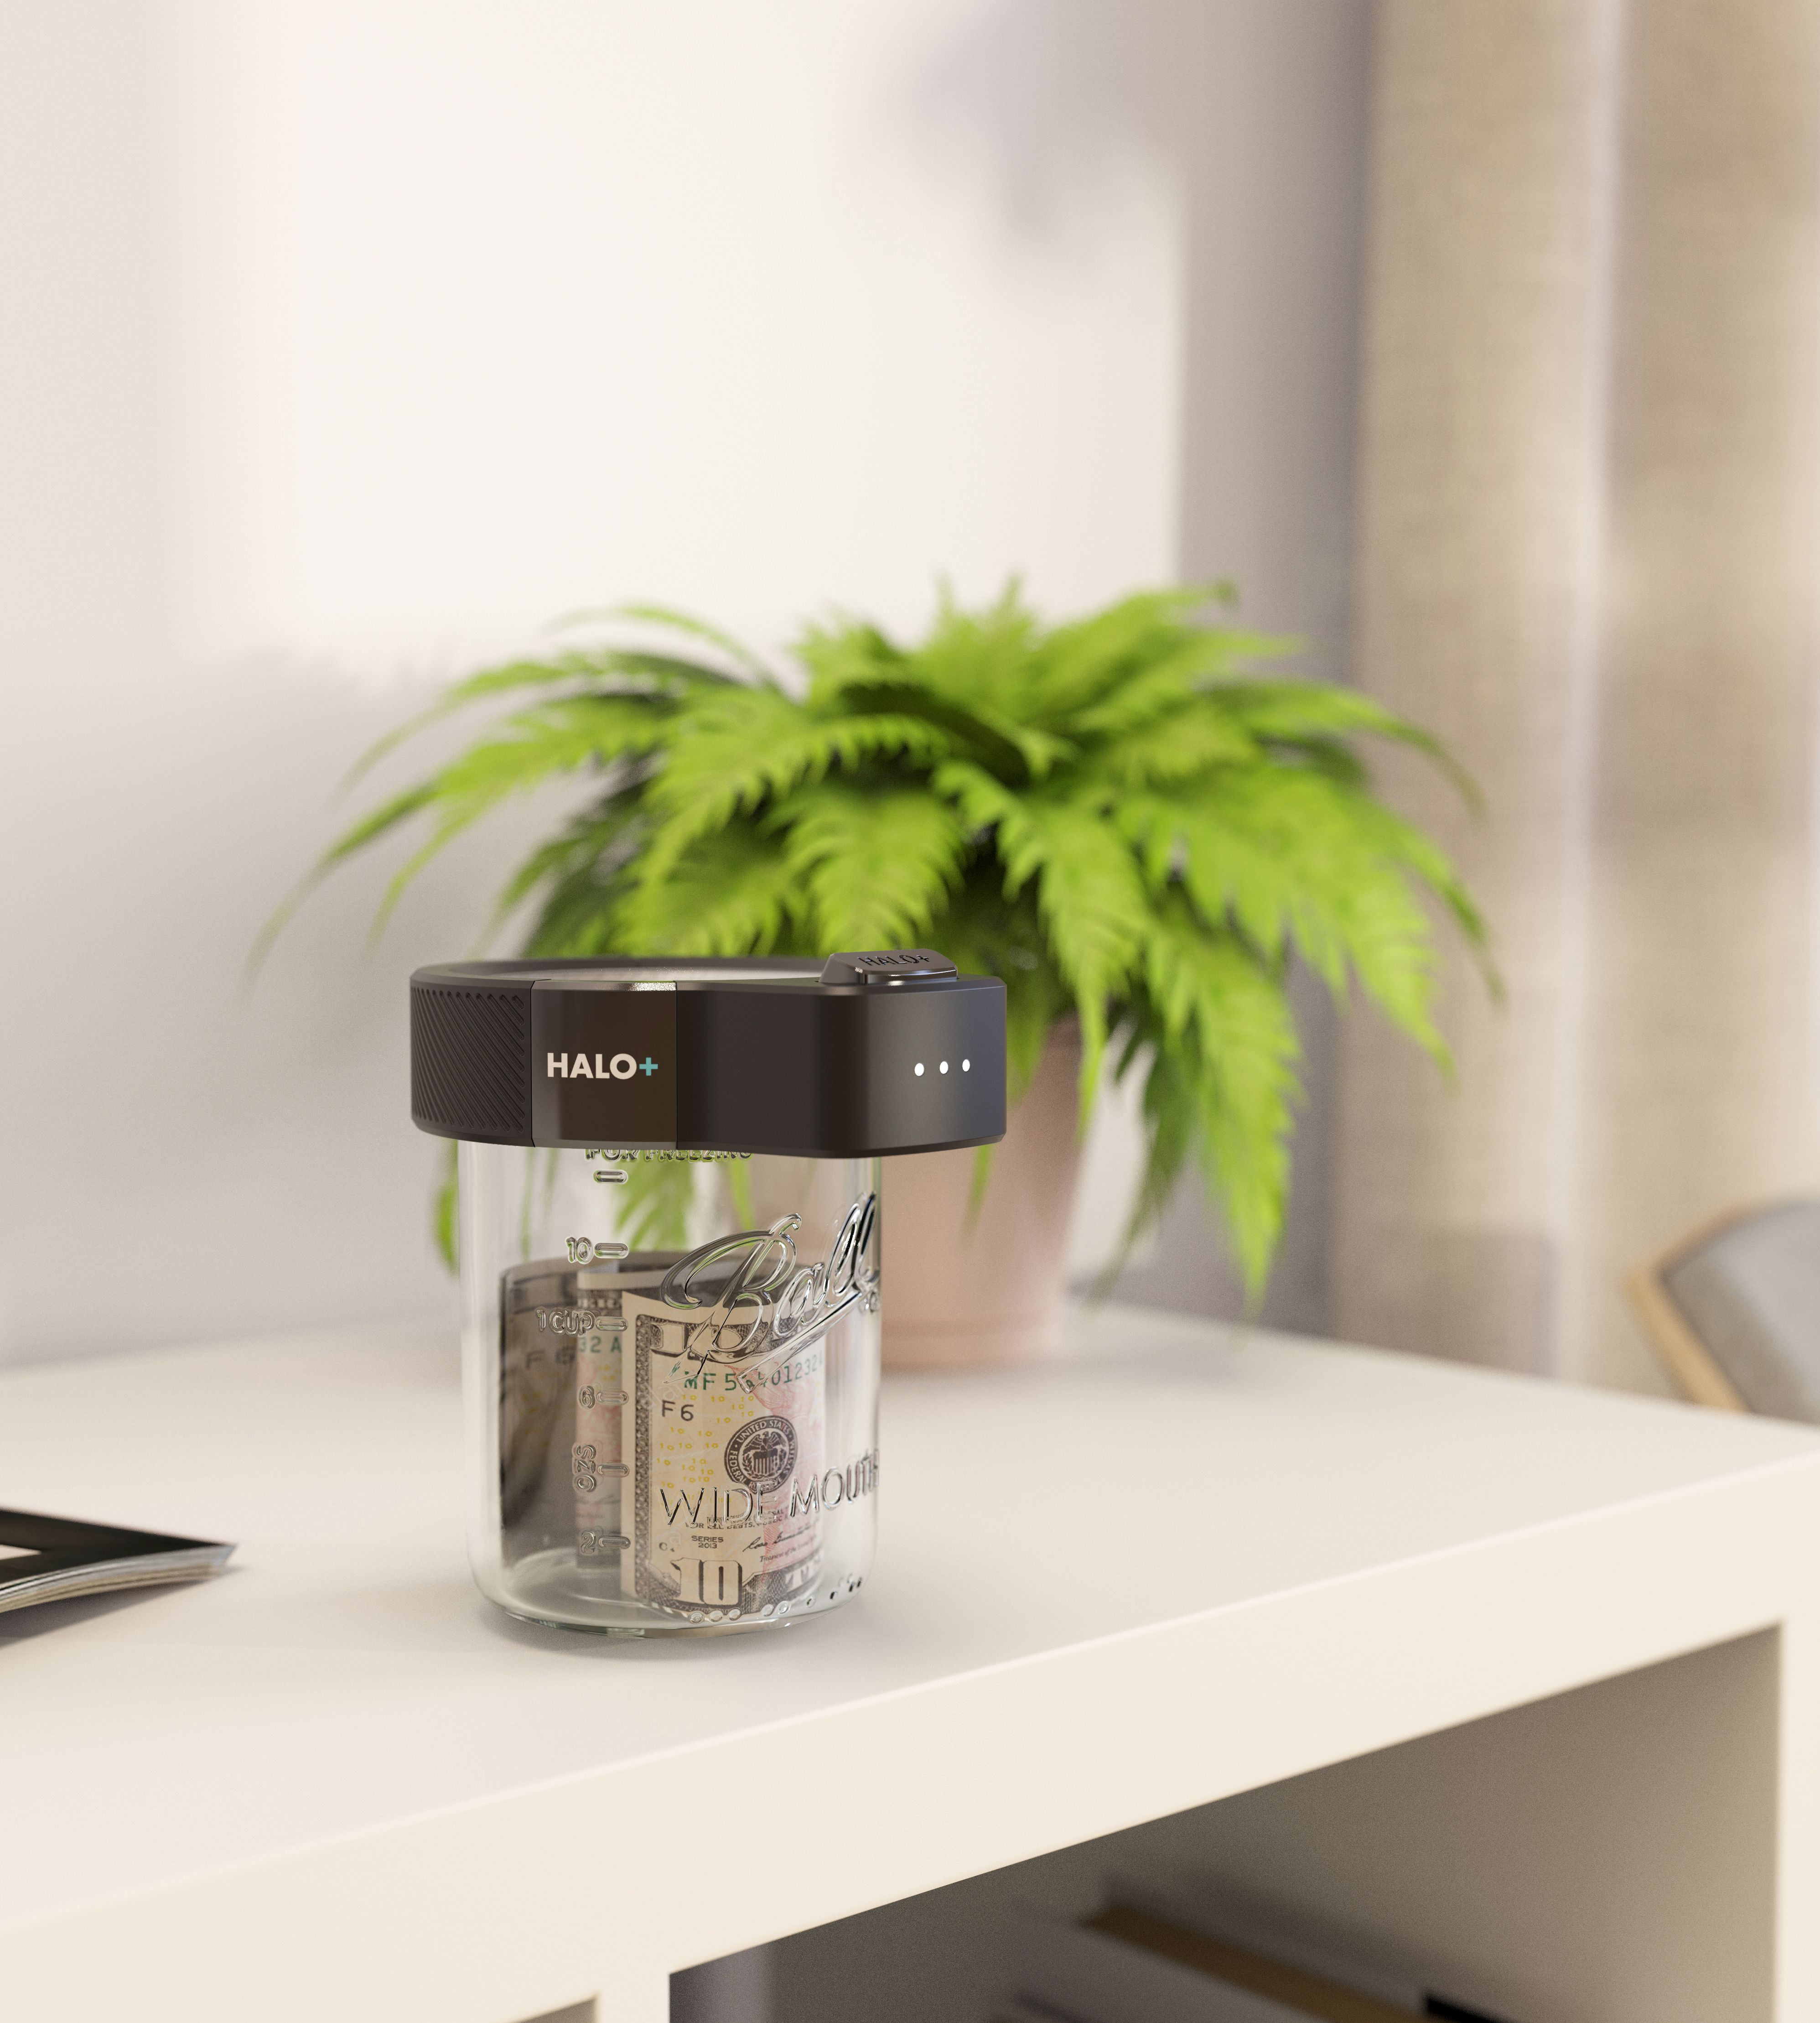 3D CAD Render by Sprout Studios of Varna Tech with Halo+ and mason jar